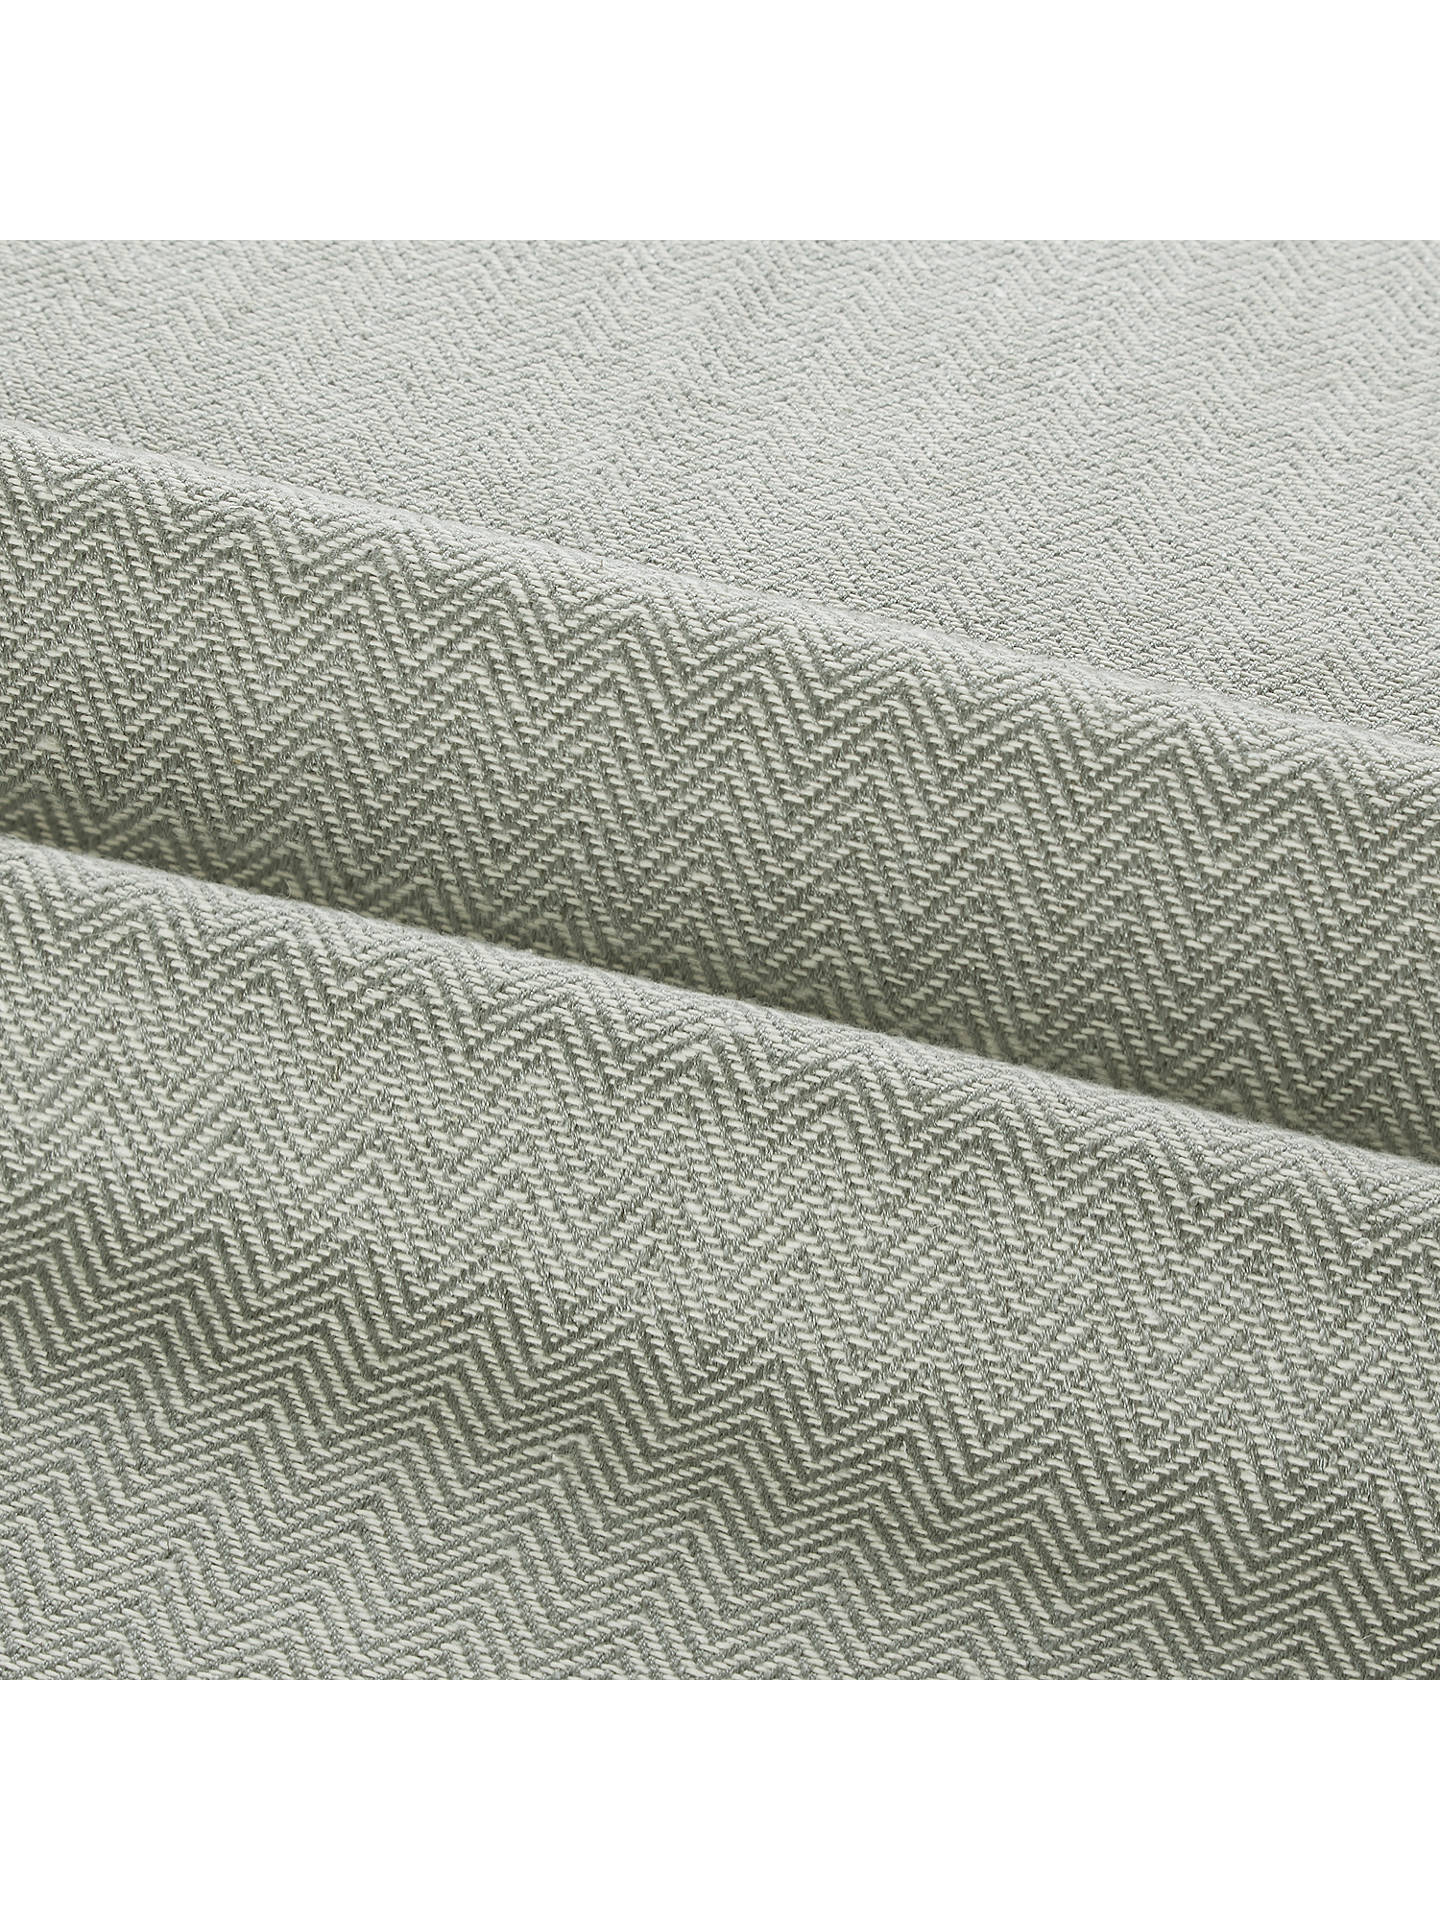 Buy Croft Collection Herringbone Furnishing Fabric, Slate Online at johnlewis.com